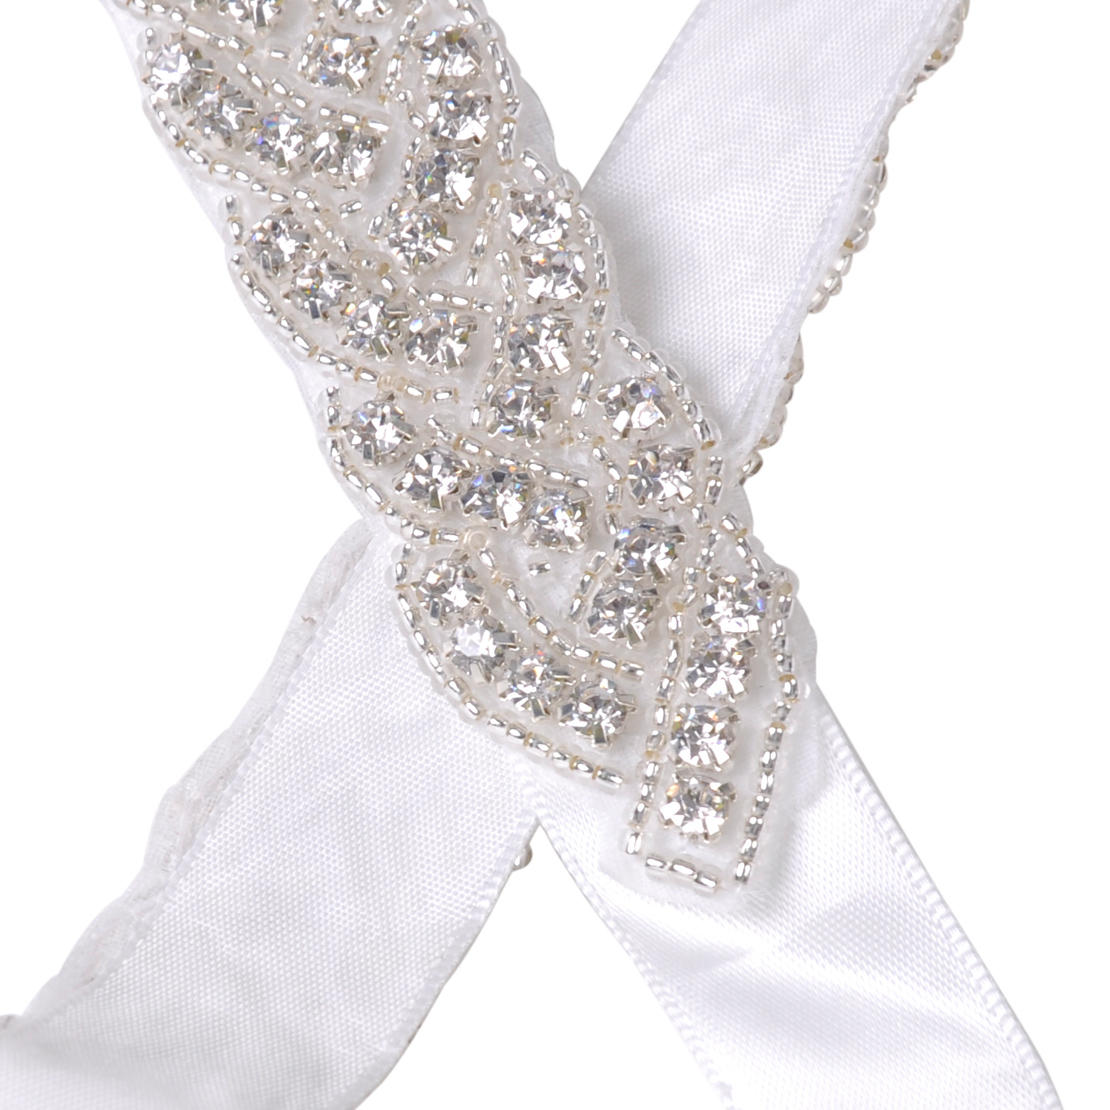 Beauty rhinestone bridal sash waist belt satin ribbon for Rhinestone sash for wedding dress